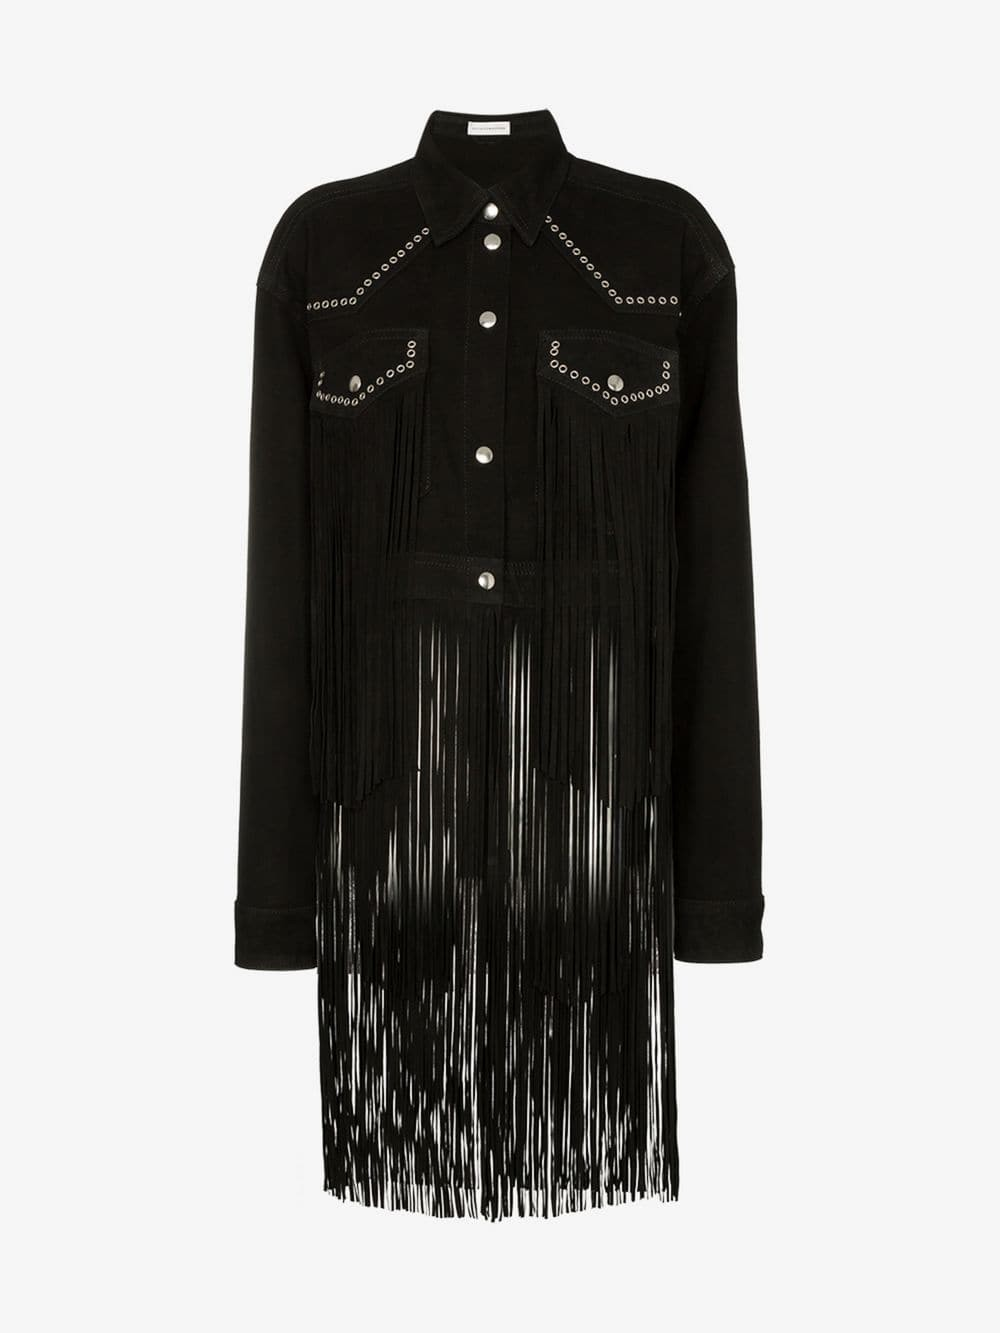 Faith Connexion fringed studded suede jacket in black